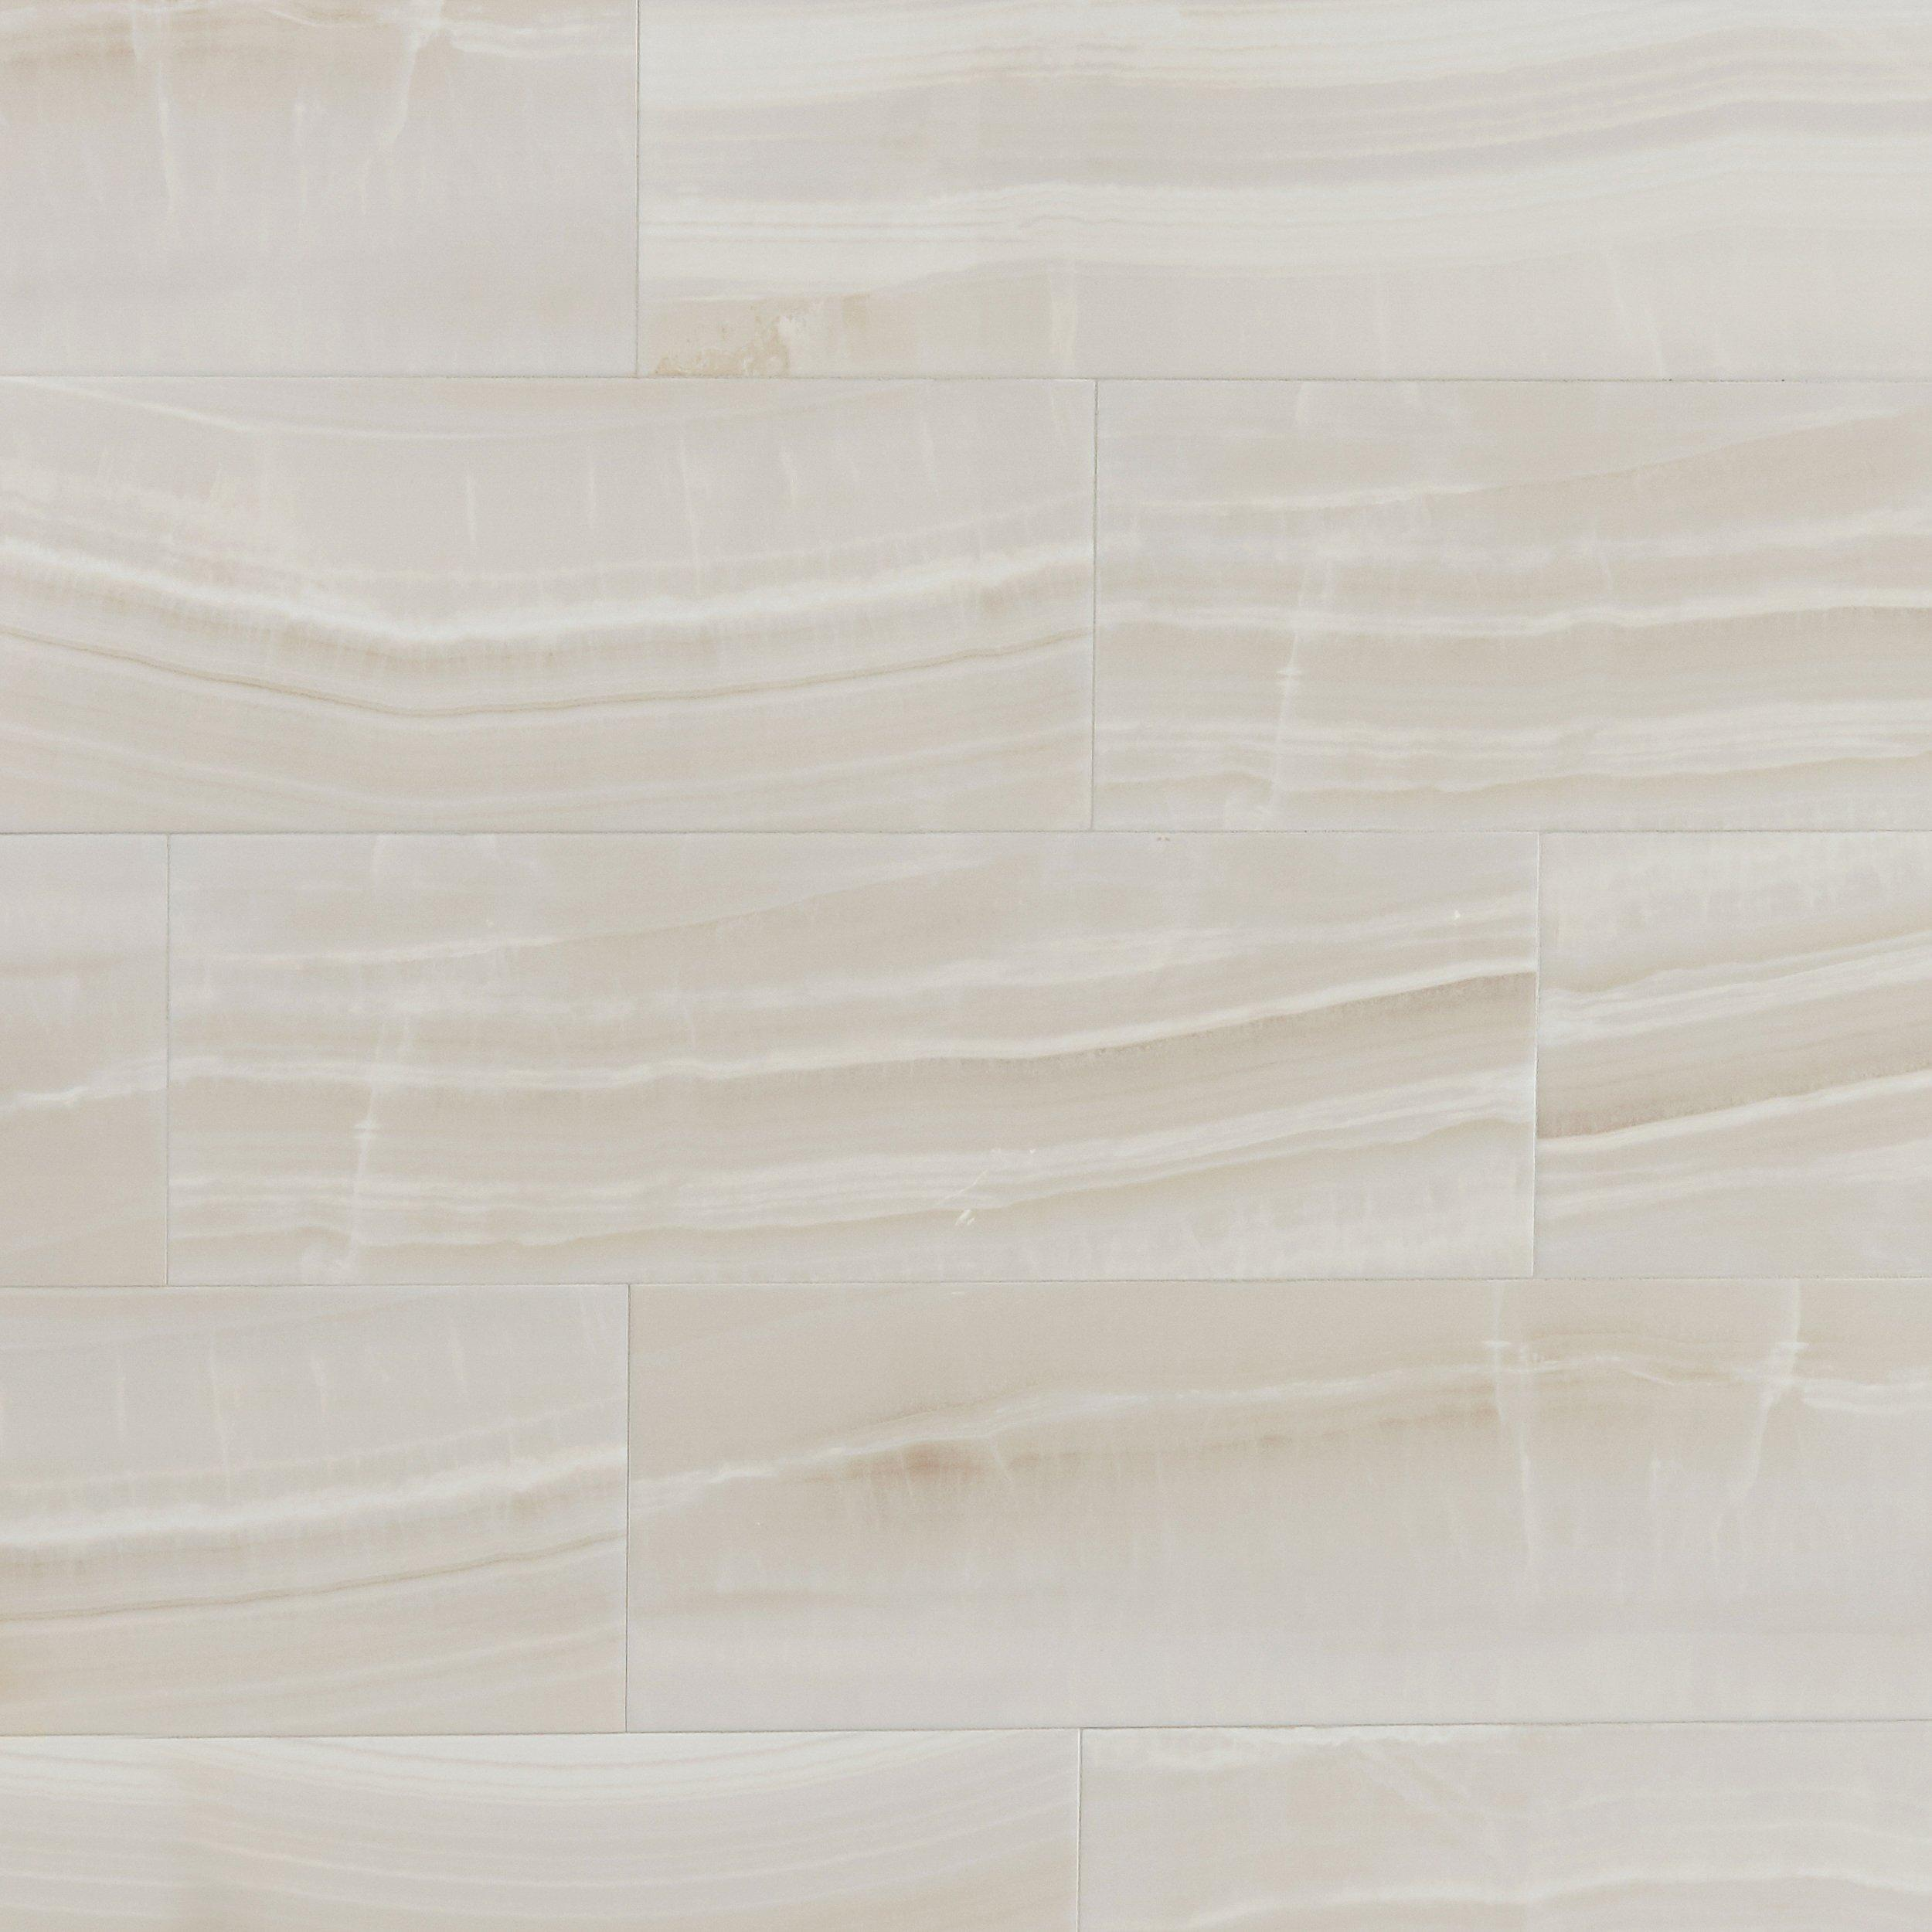 Onyx floor tile durability 28 images tiles onyx floor tiles onyx onyx floor tile durability onyx tile tilesonyx floor tile onyx floor tile durability dailygadgetfo Image collections